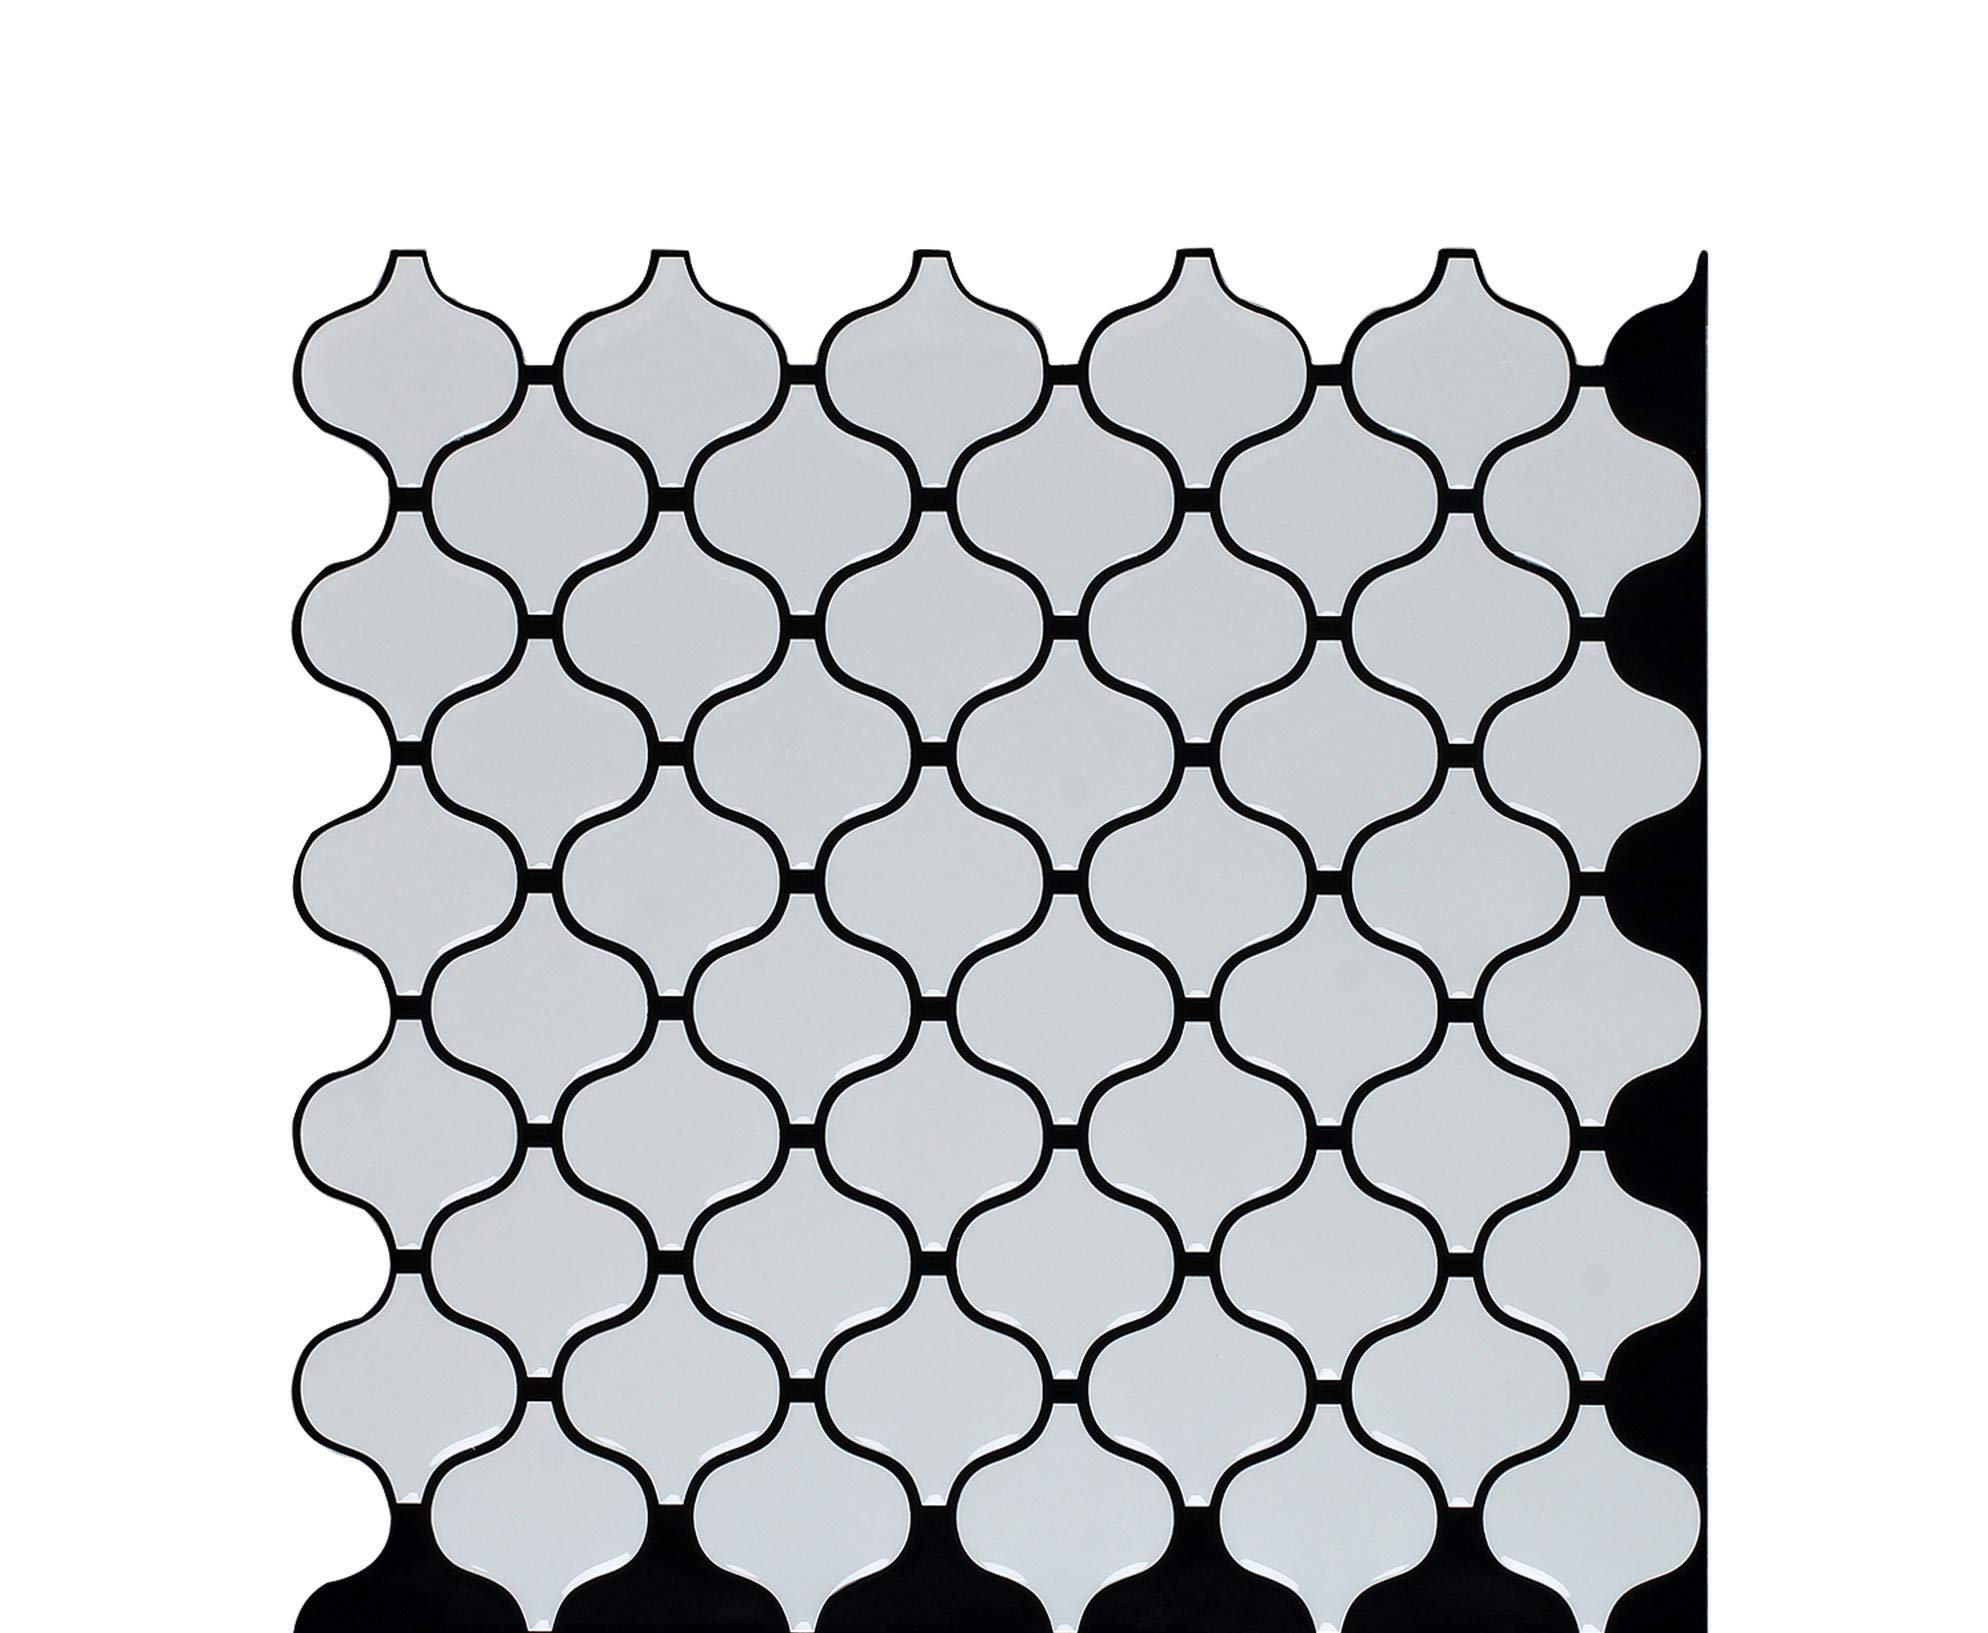 Backsplash Peel and Stick, Peel and Stick Wall Tile, Peel and Stick Tile for Kitchen Backsplash, Self-Adhesive and Decorative Backsplash Peel and Stick Tile, 3D EFFECT, 4 OF 10\'\' x 10\'\' IN PACKAGE